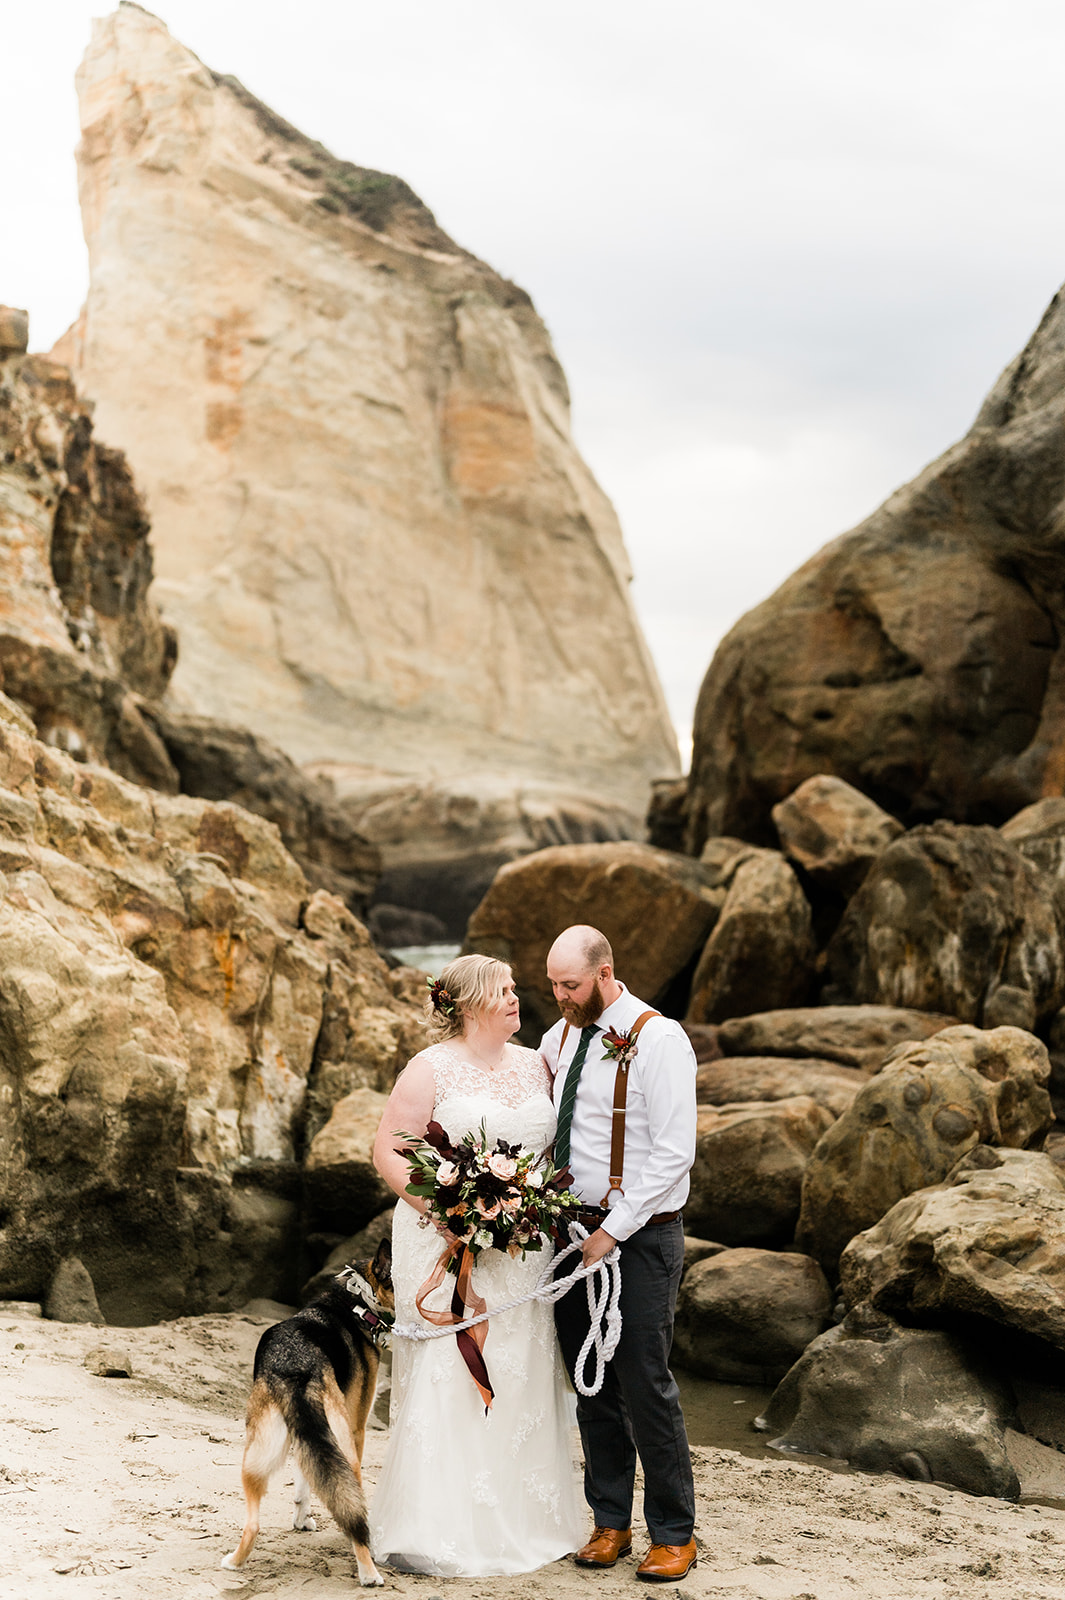 Amber & Russell's autumn elopement at Cape Kiwanda, Oregon. Image by Forthright Photo.